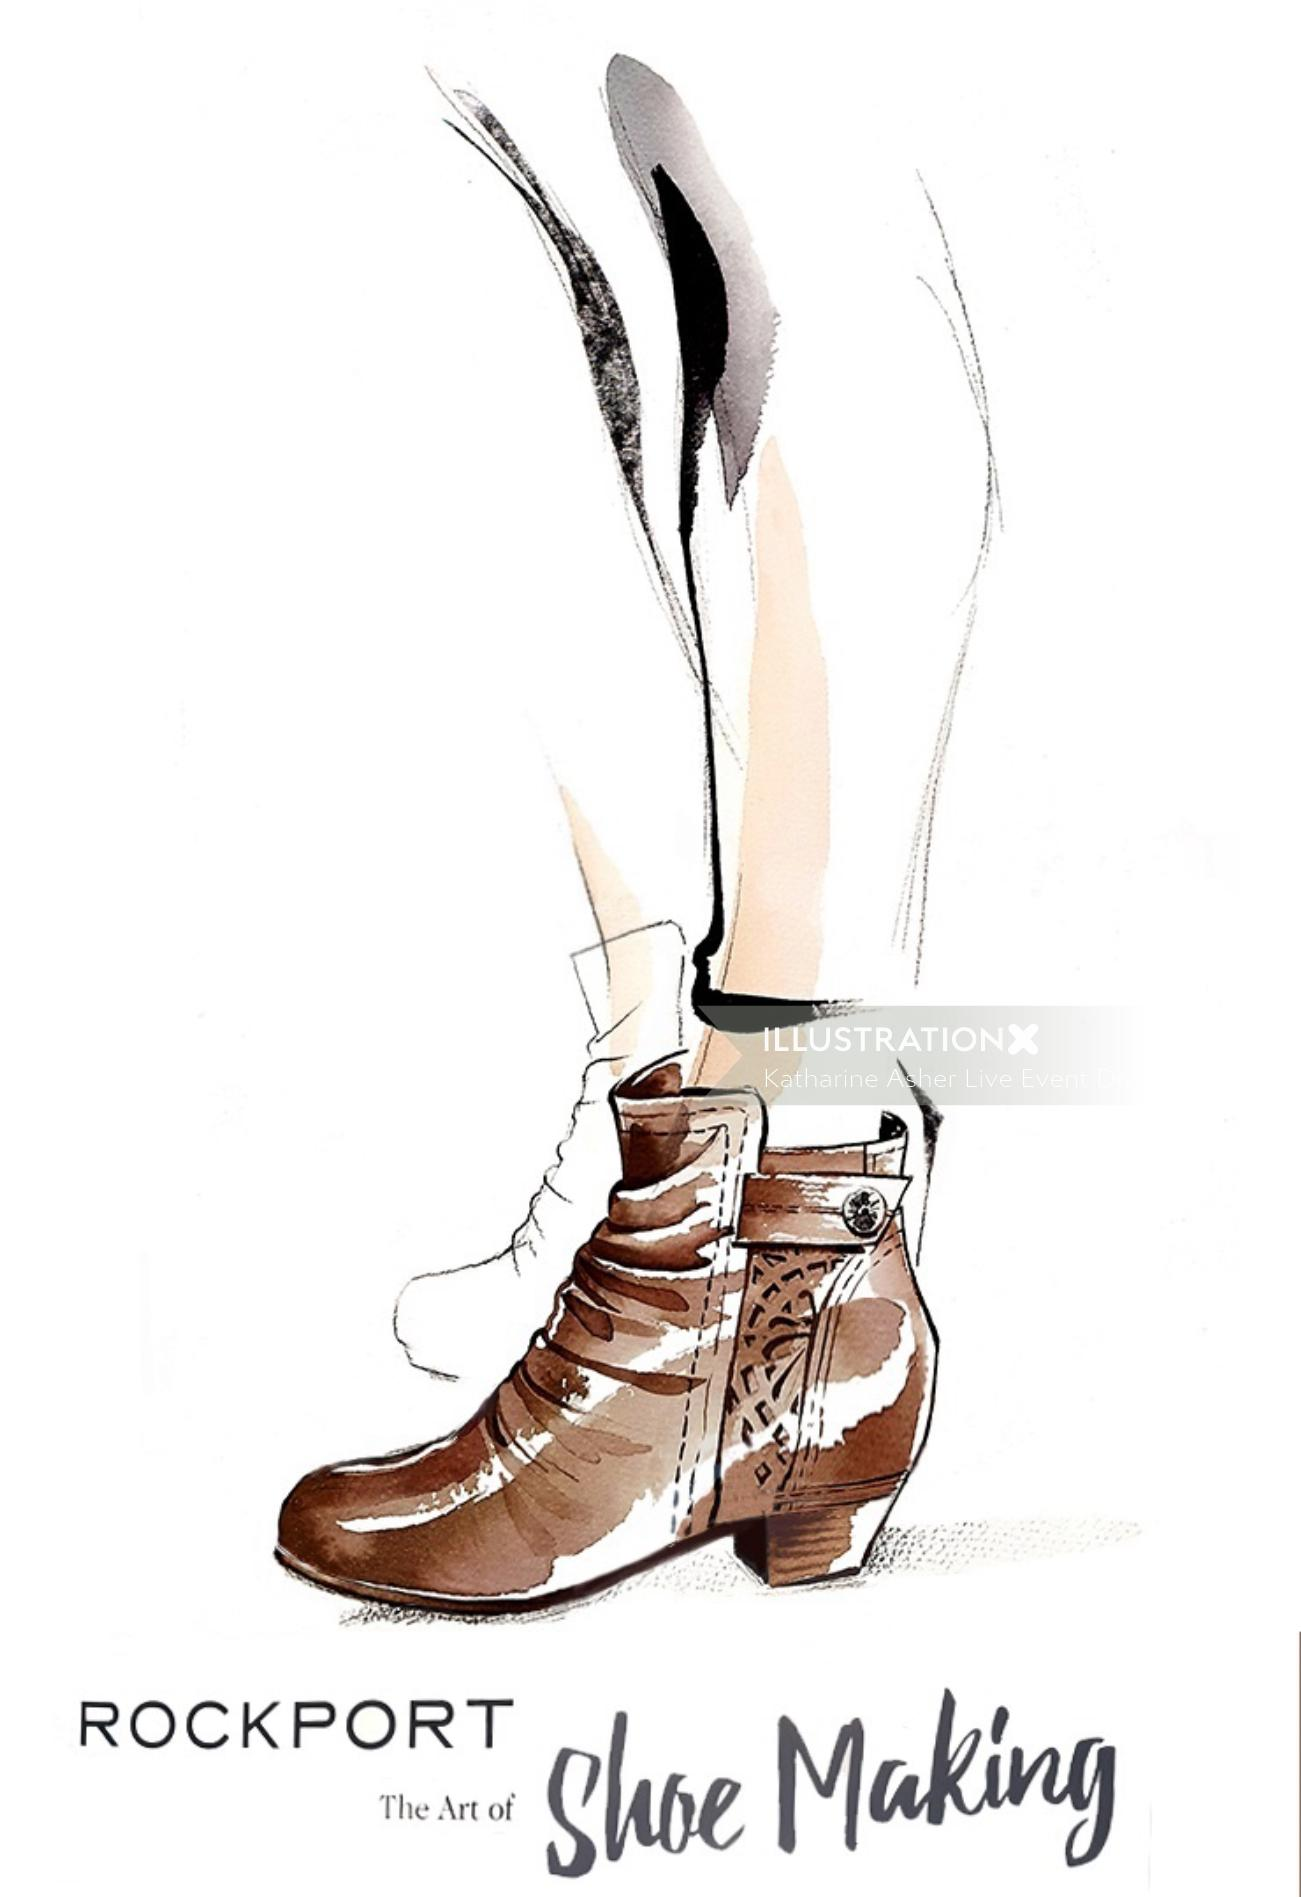 rockport shoes promotion drawing by Katharine Asher